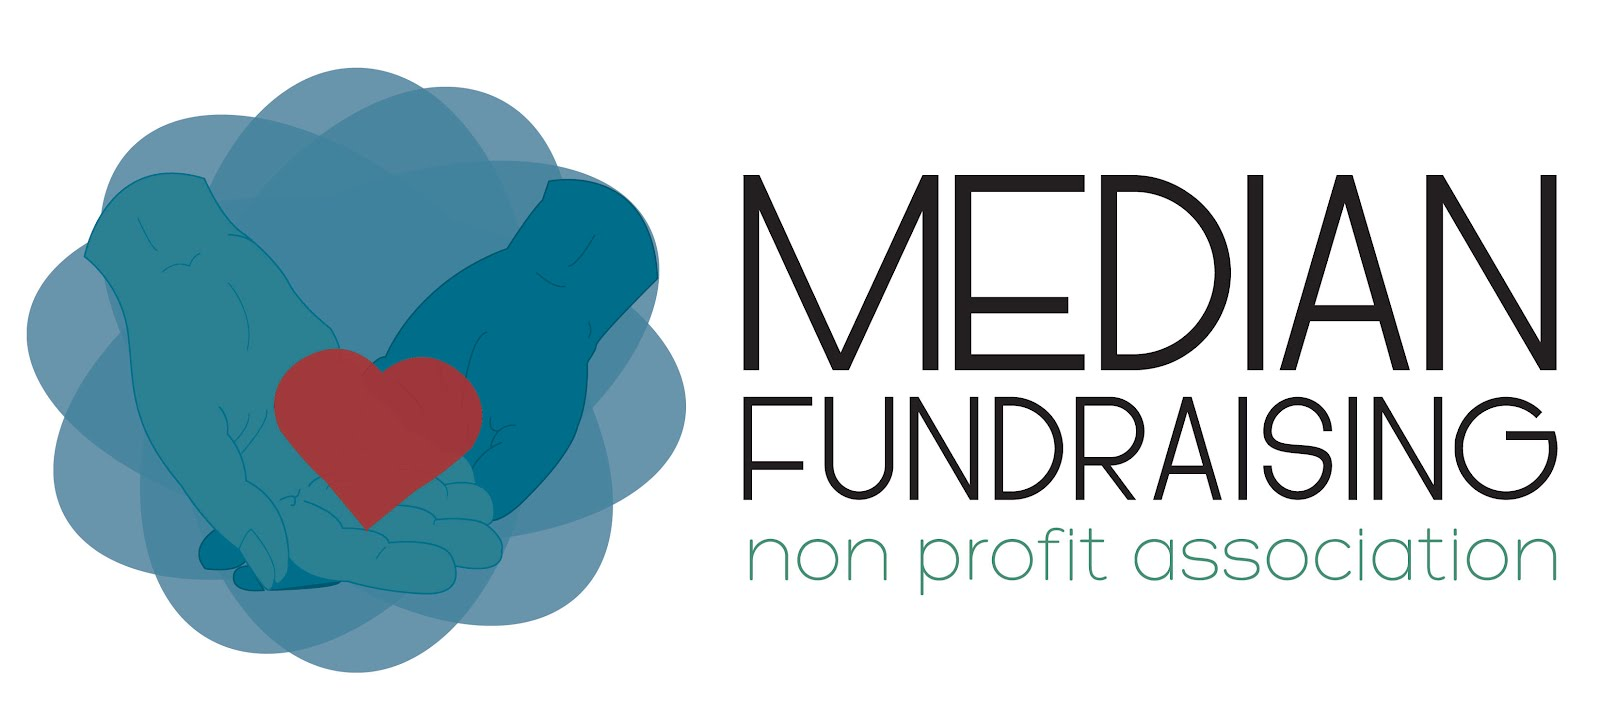 Median Fundraising Non-Profit Association